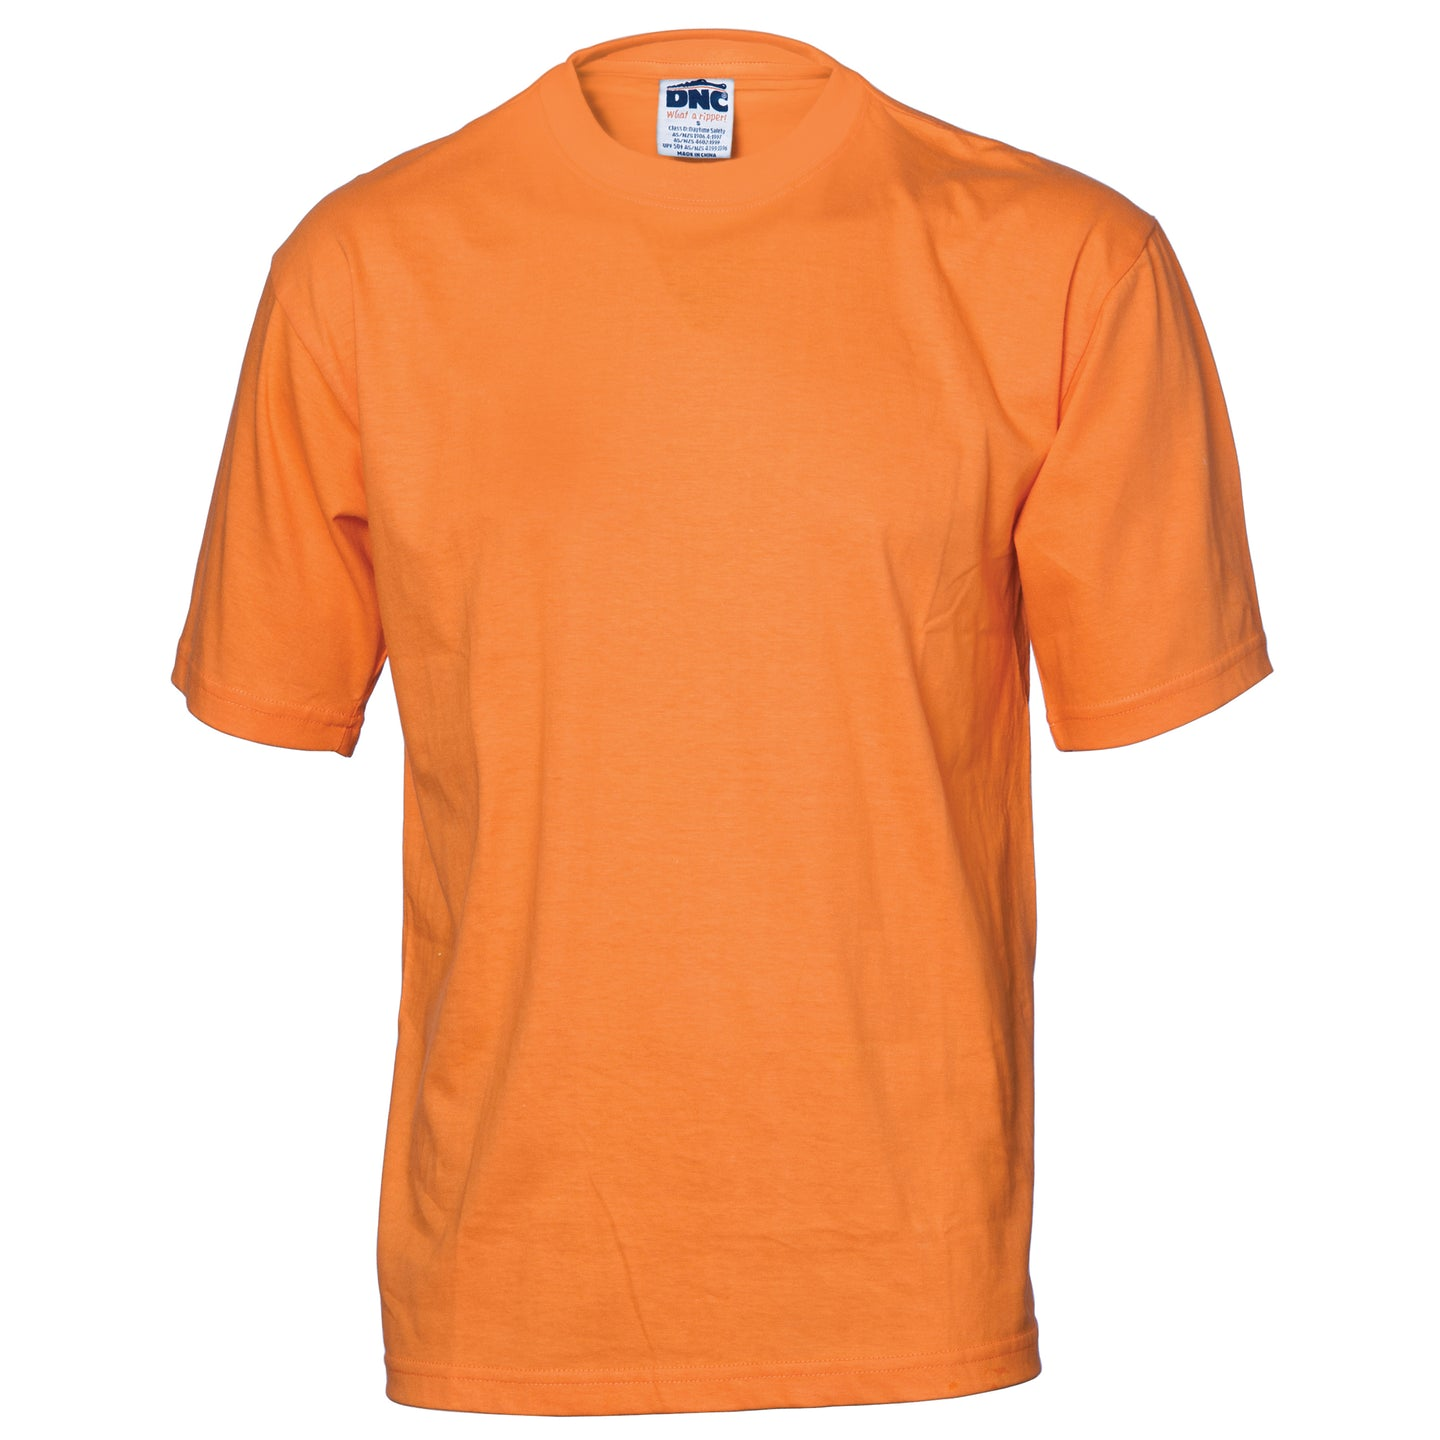 Hi-Vis Cotton Jersey T-Shirt